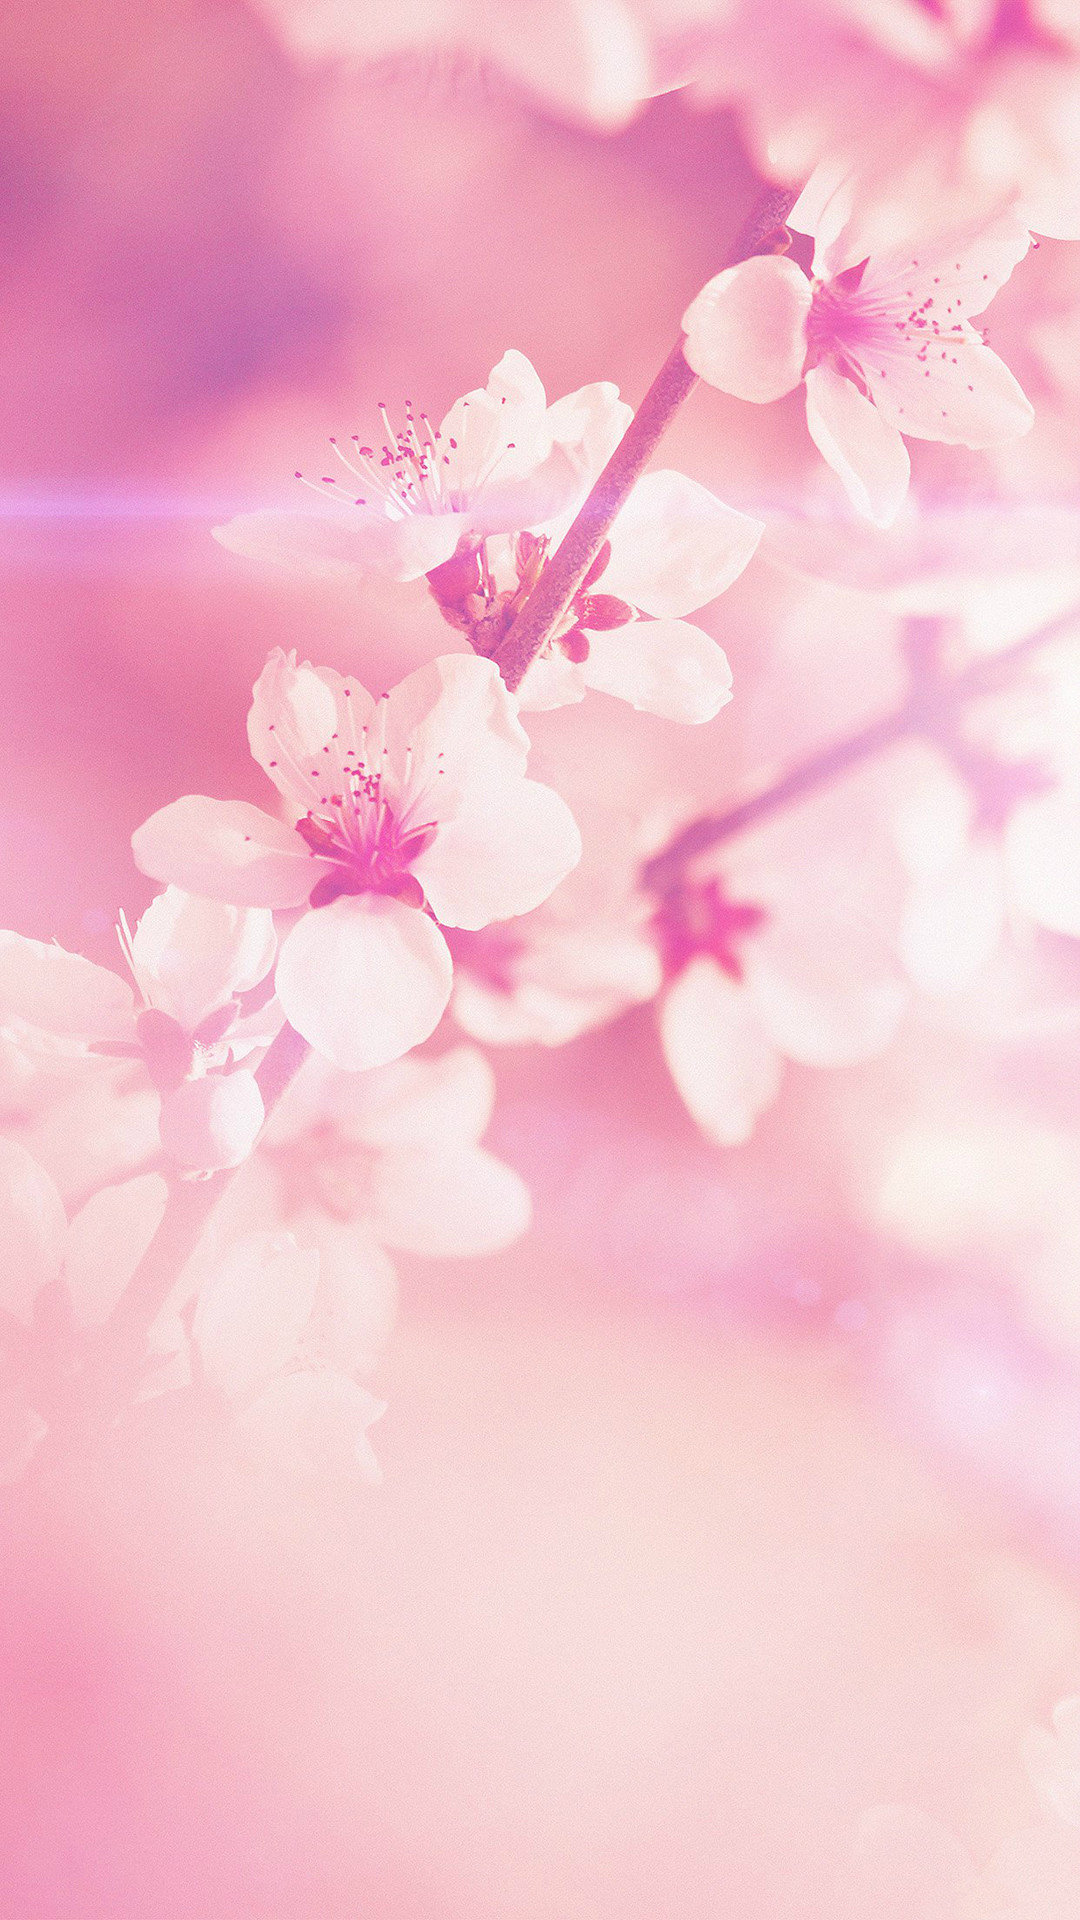 Spring Flower Pink Cherry Blossom Flare Nature iPhone 6 wallpaper